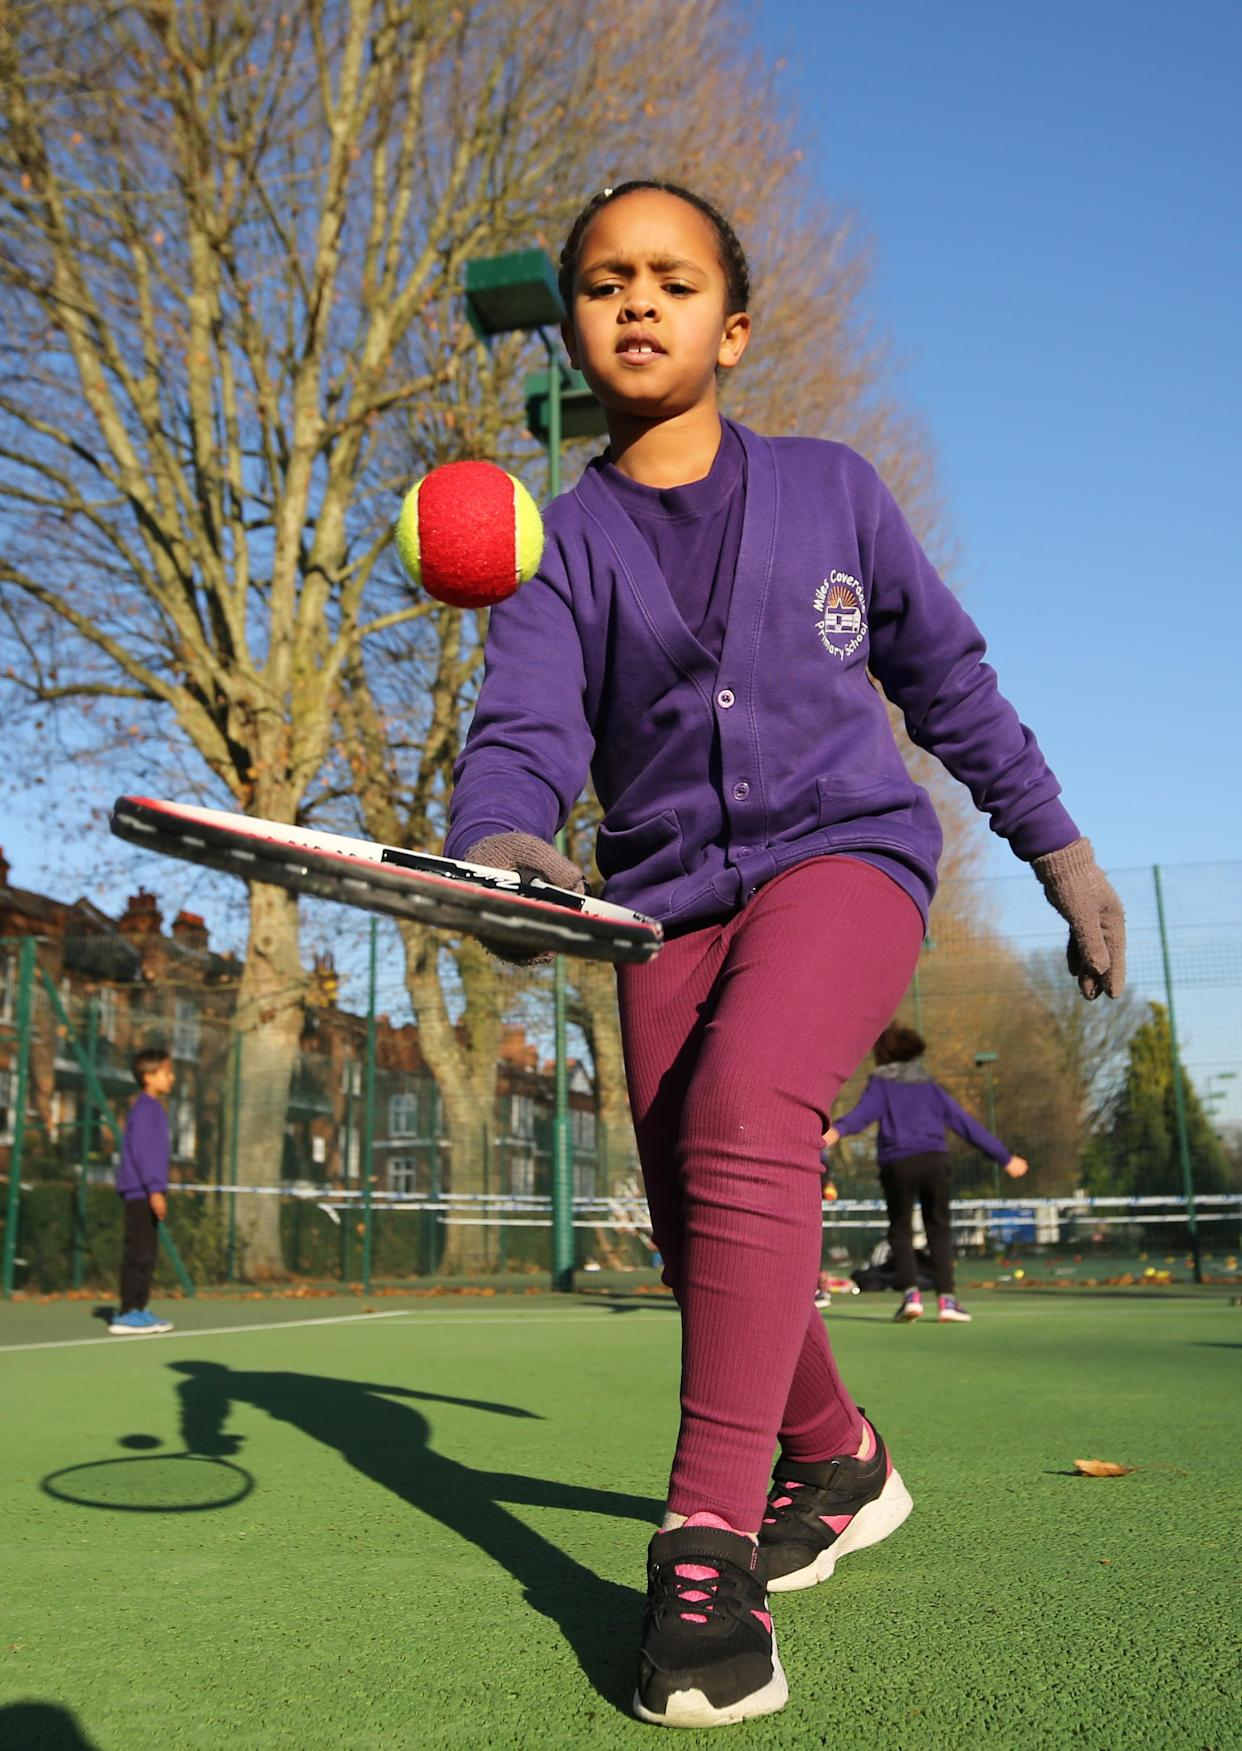 The LTA has introduced a number of schemes to broaden tennis' reach